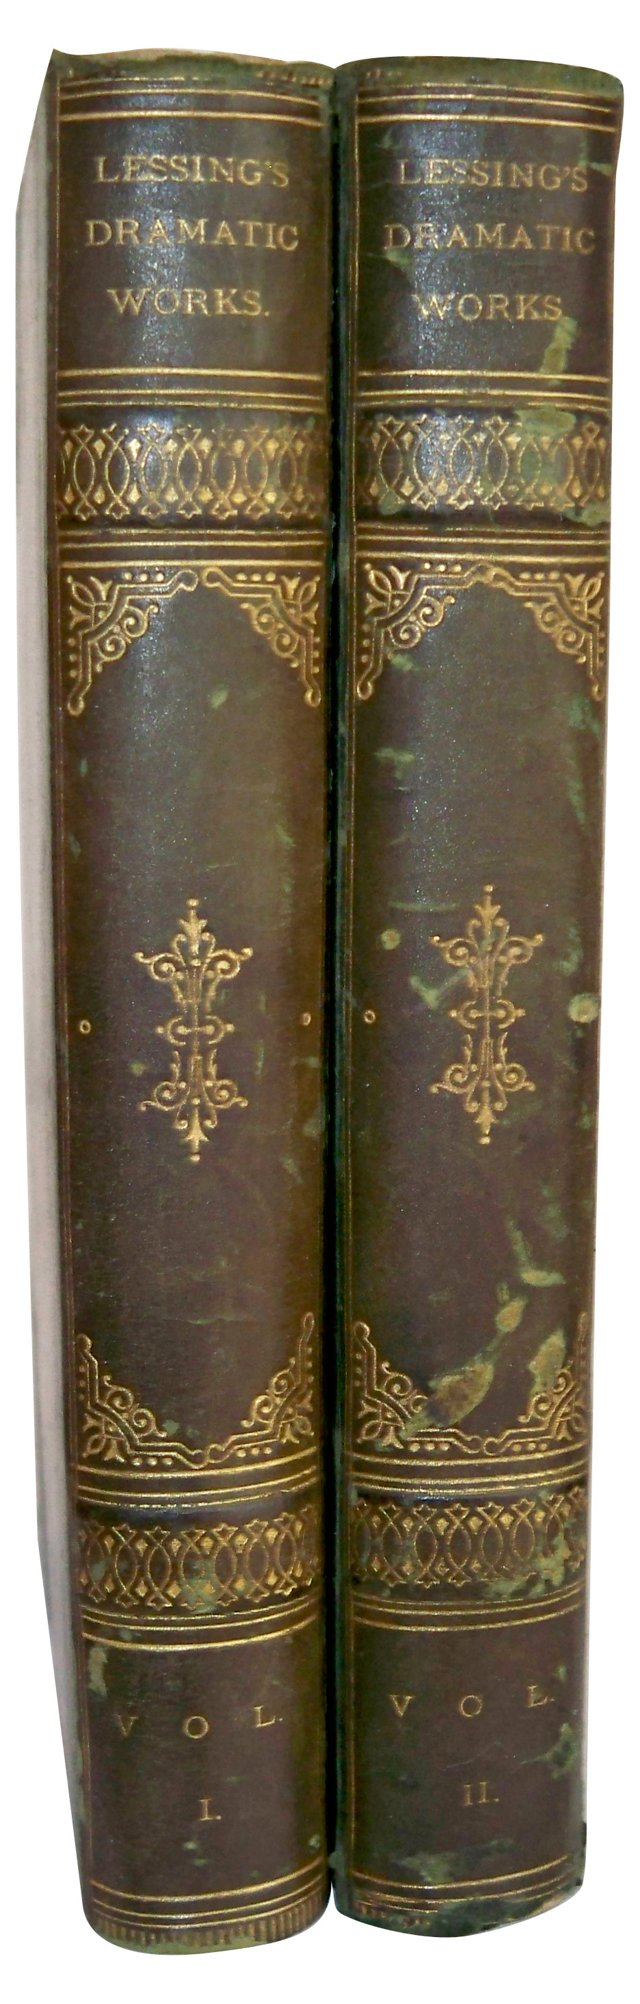 G. E. Lessing's Dramatic Works, Pair